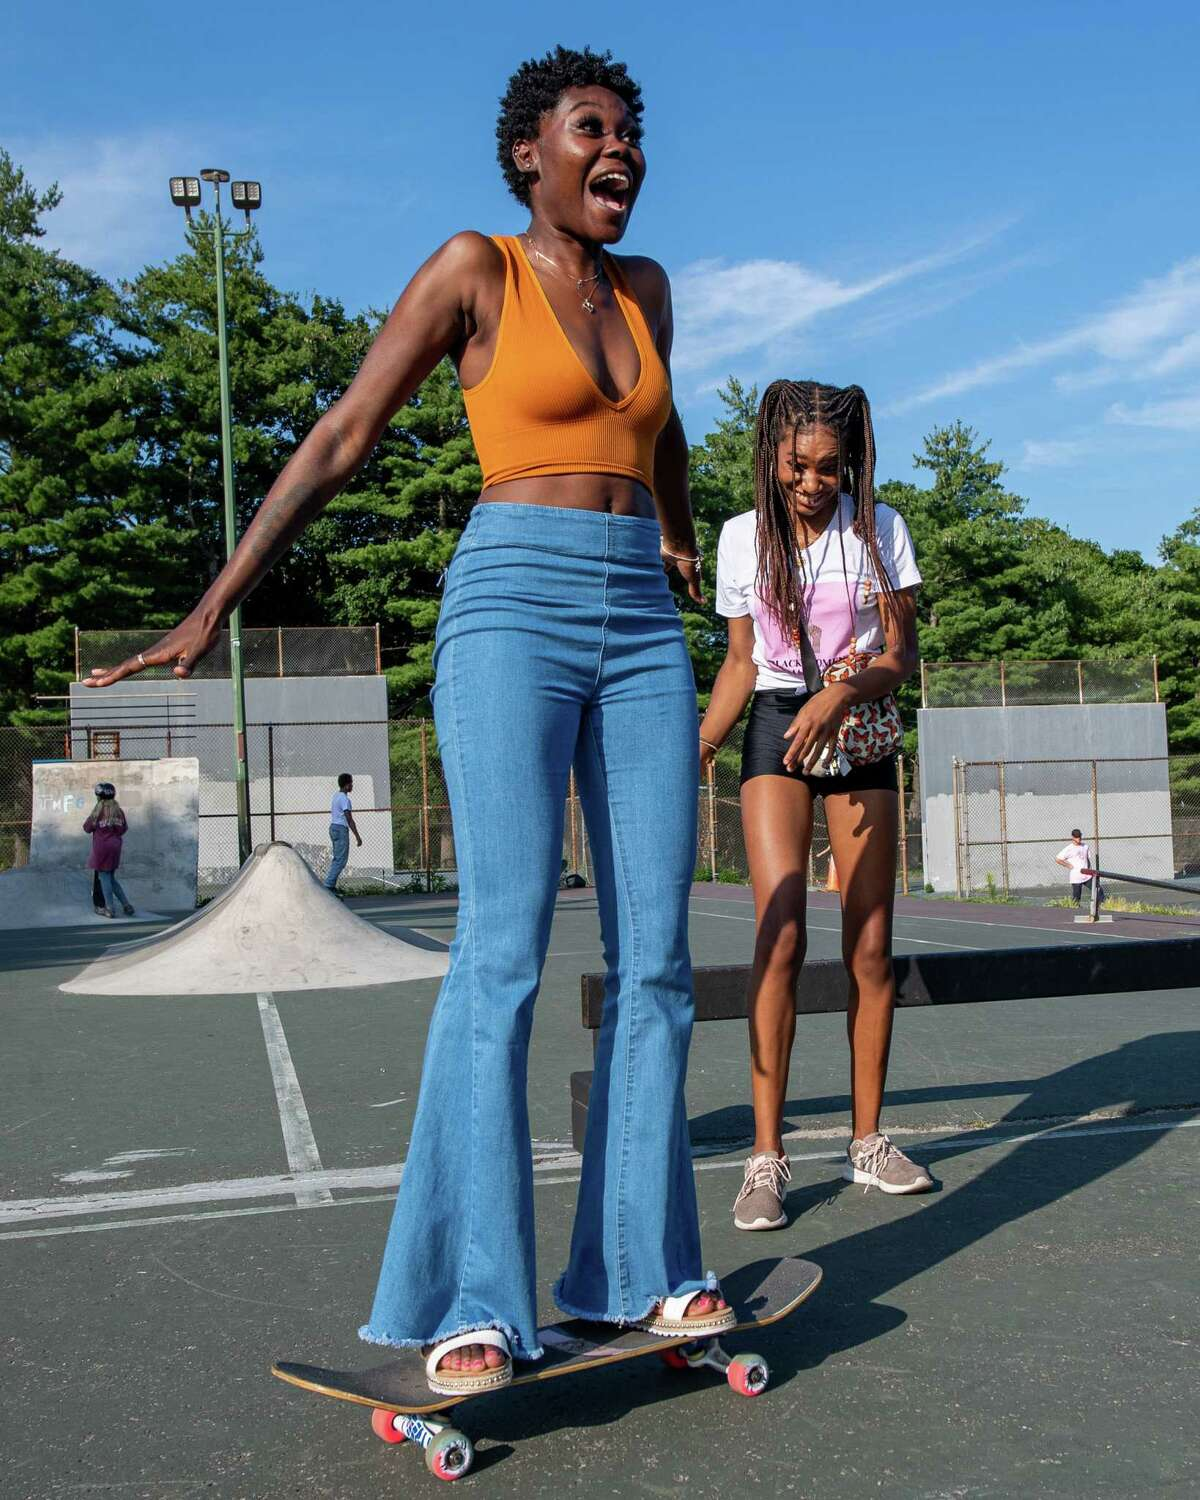 Destiny Harris gets a push from Chantelleigh Graham during a meet-up hosted by Noteworthy Resources to introduce women, youth, members of the LGBTQ+ community and their allies to the sport of skateboarding at the Albany Skate Park in Washington Park in Albany, NY, on Saturday, Aug. 15, 2020 (Jim Franco/special to the Times Union.)